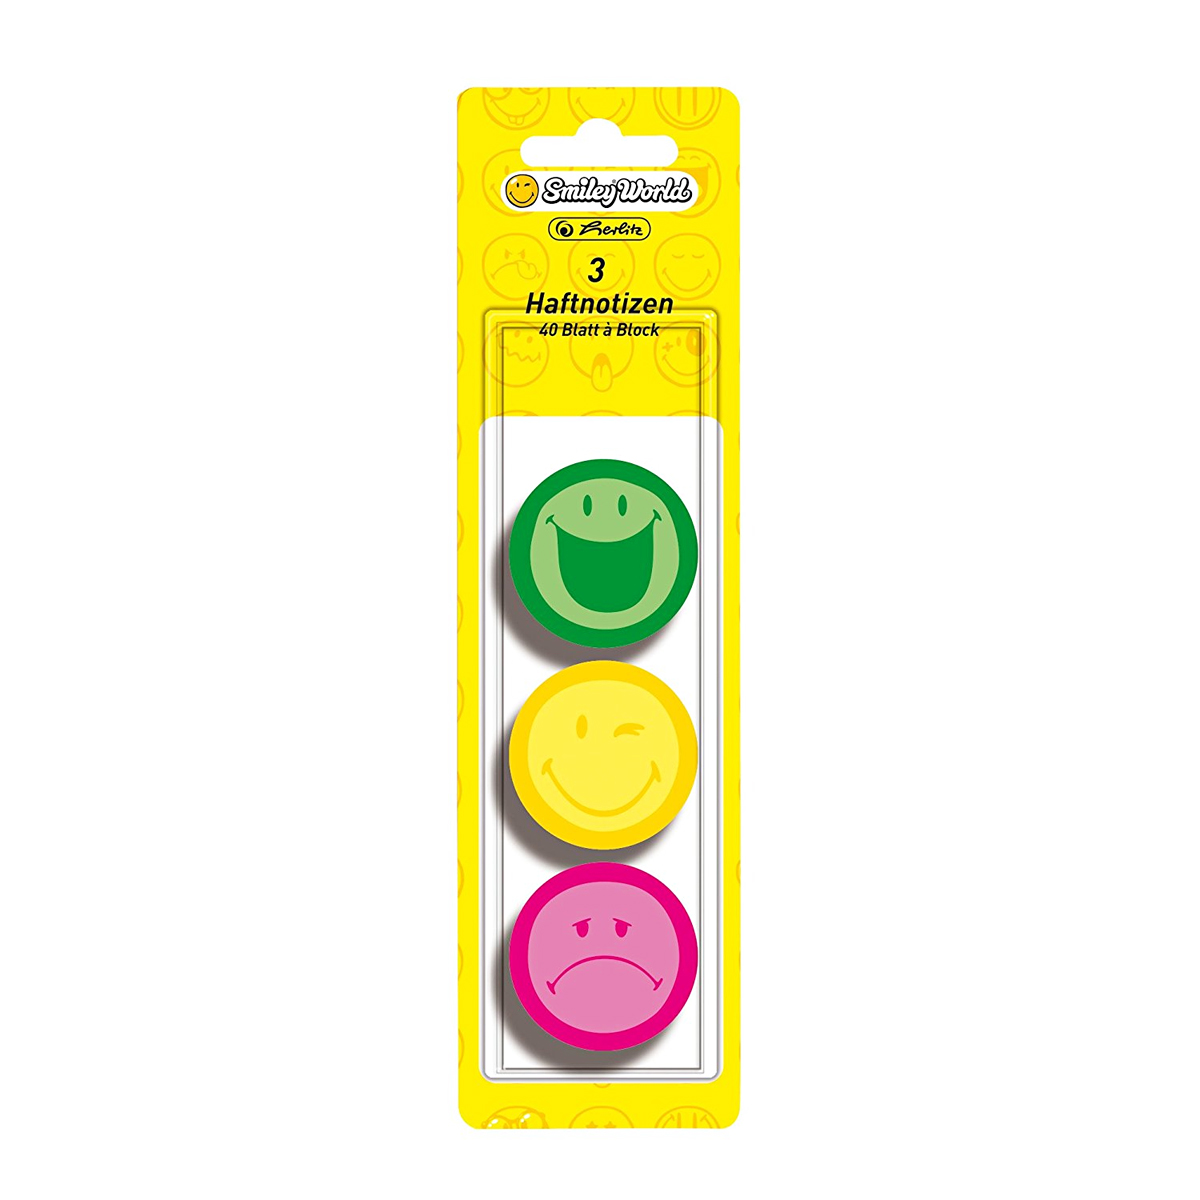 Memo Sticker, Post-It Rotund, 3 x 40 File, Smiley, Herlitz, 11238003